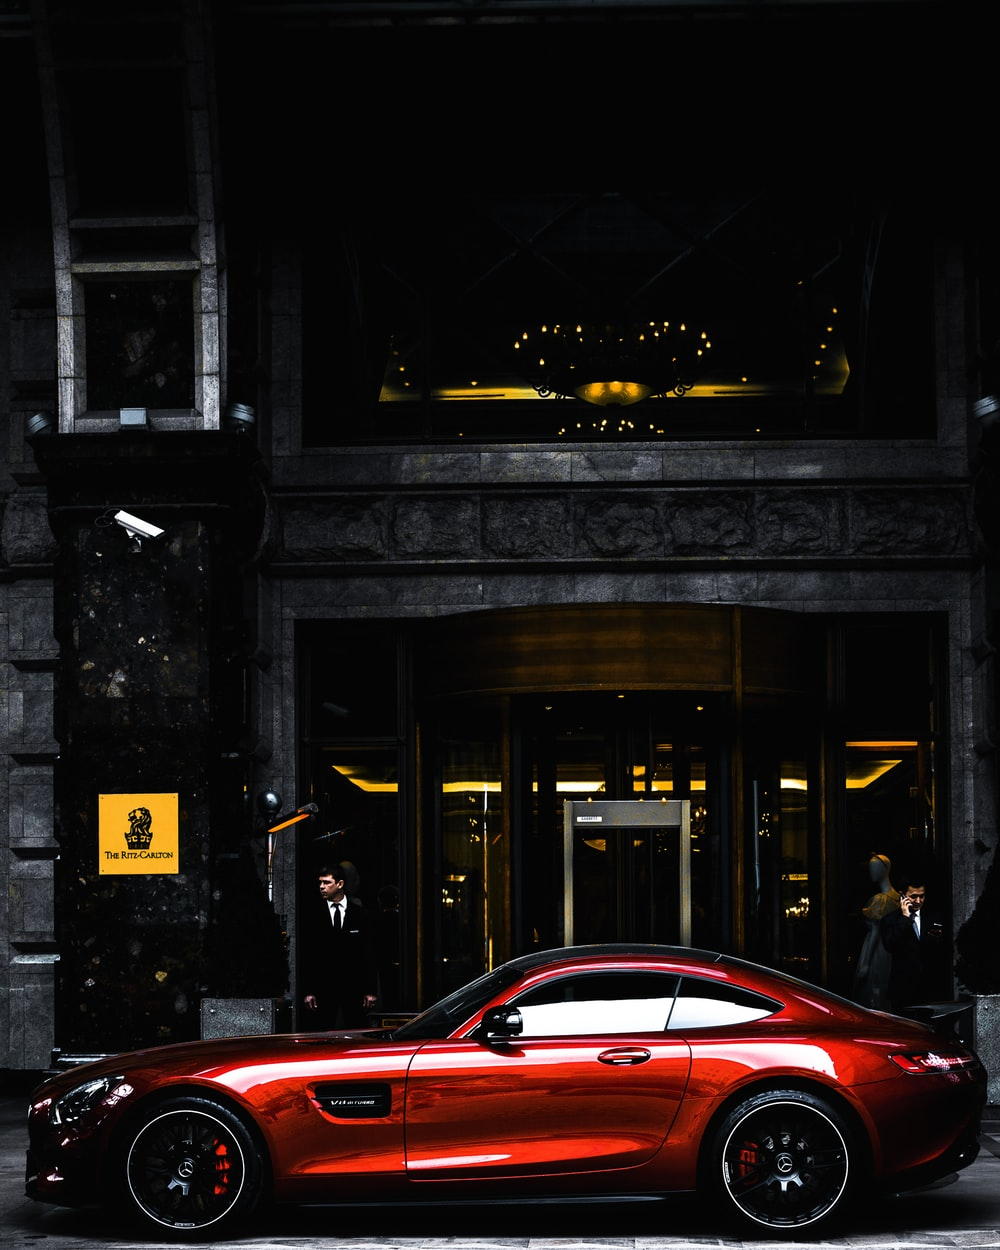 red coupe parked in front of black and gray building during daytime